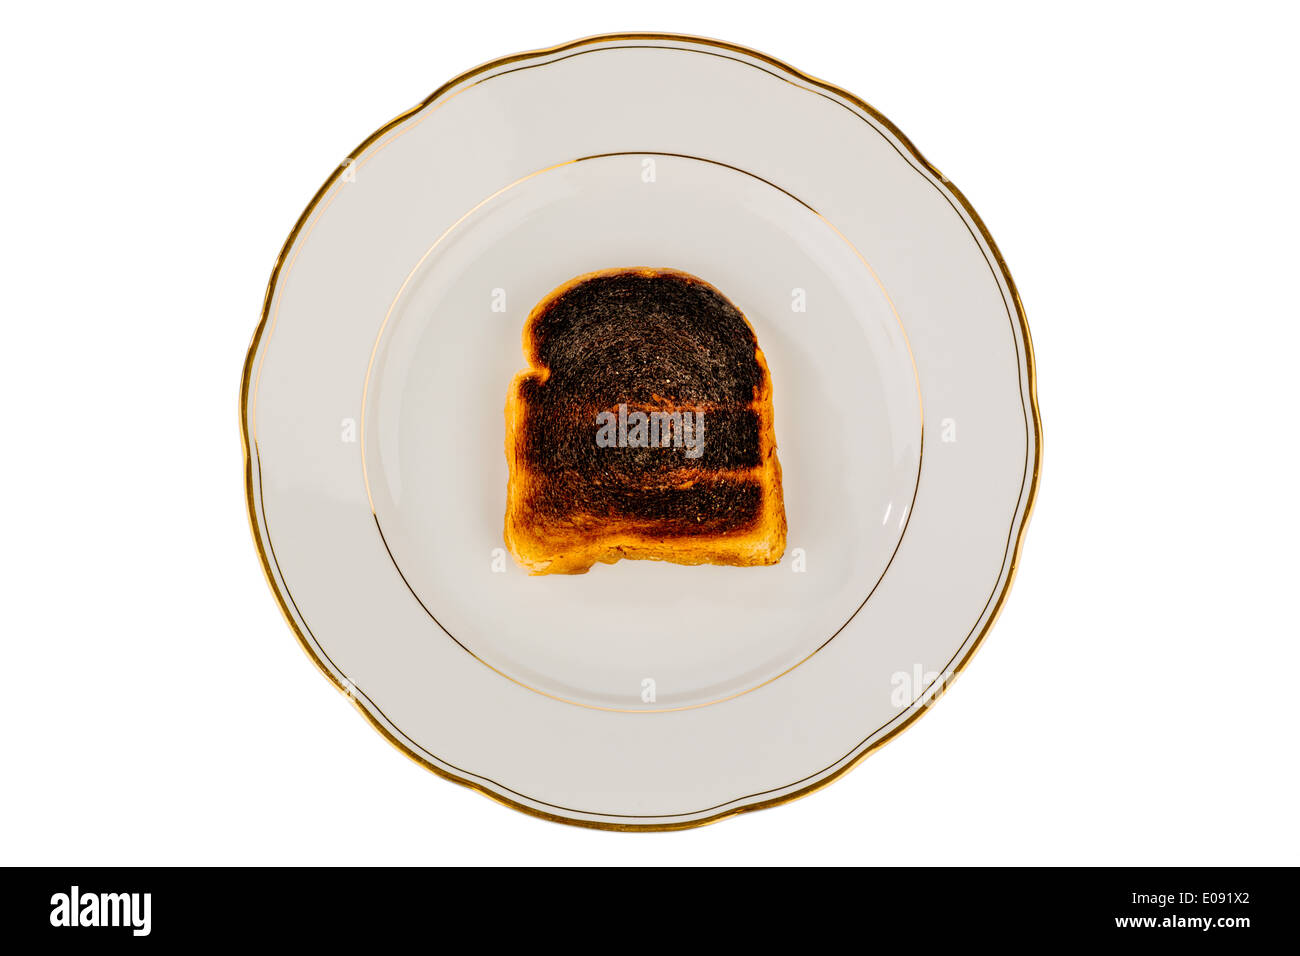 Toast bread became with drink a toast burntly. Burntly toast discs with the breakfast., Toastbrot wurde beim toasten verbrannt. - Stock Image